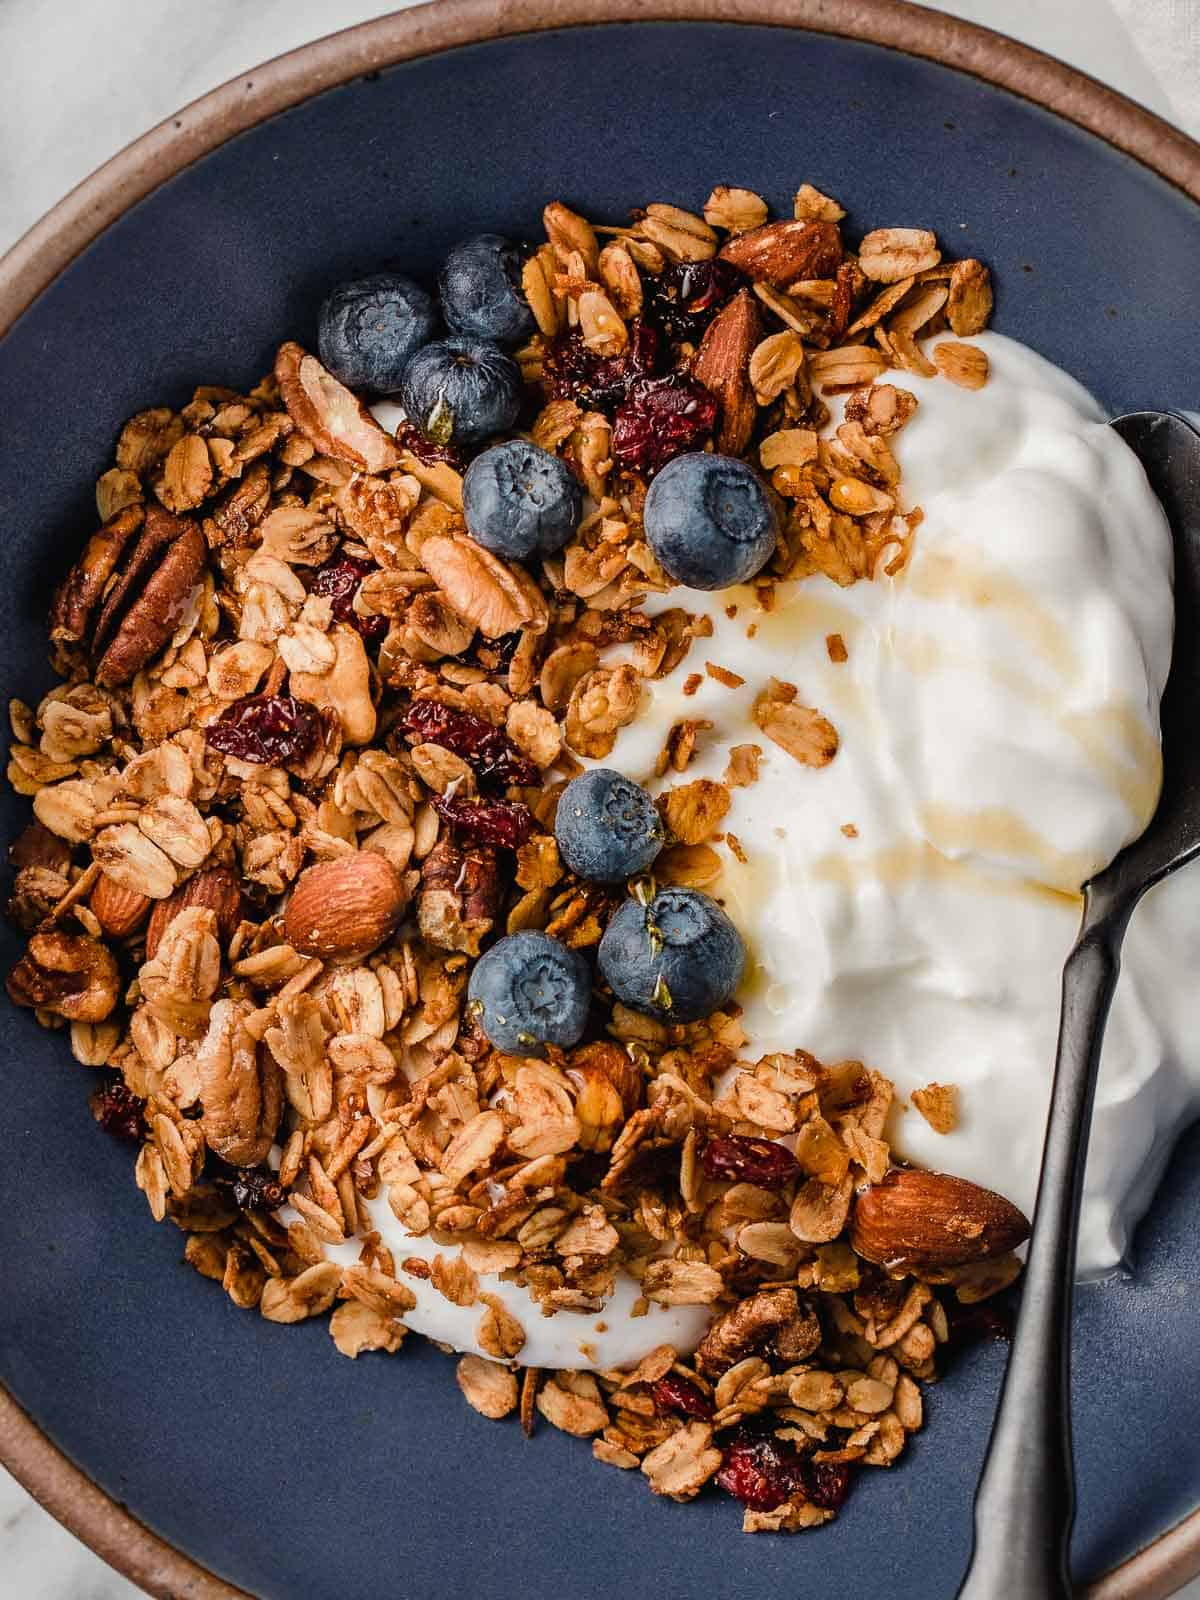 Granola in a bowl with a spoon.